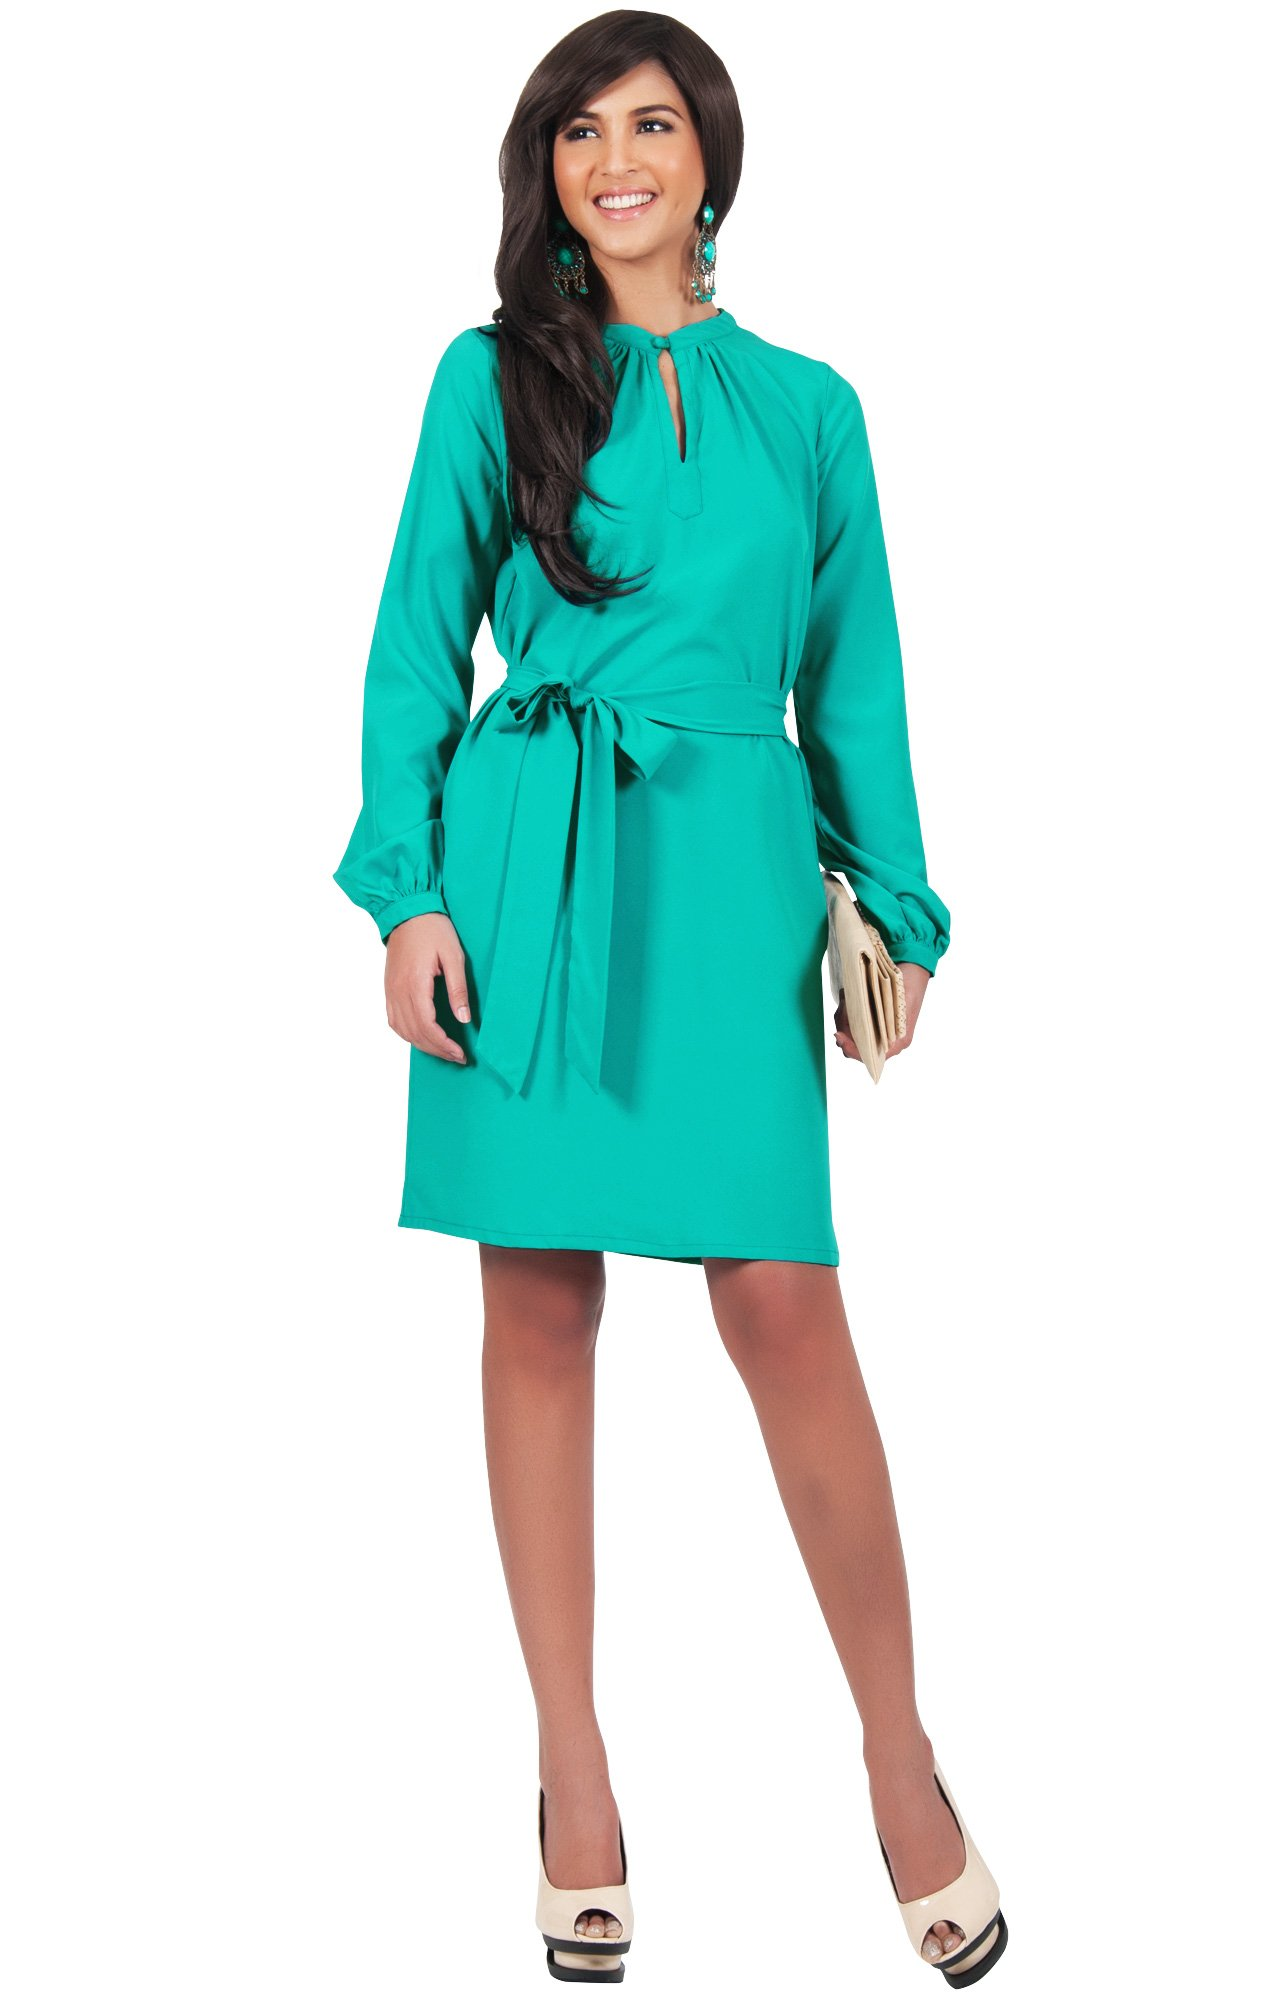 KOH KOH Plus Size Womens Long Sleeve with Sleeves Formal Work Office Casual Versatile Evening Day Fall Travel Party Wedding Guest Short Knee Length Midi Dress Dresses, Turquoise 3 X 22-24 (3)